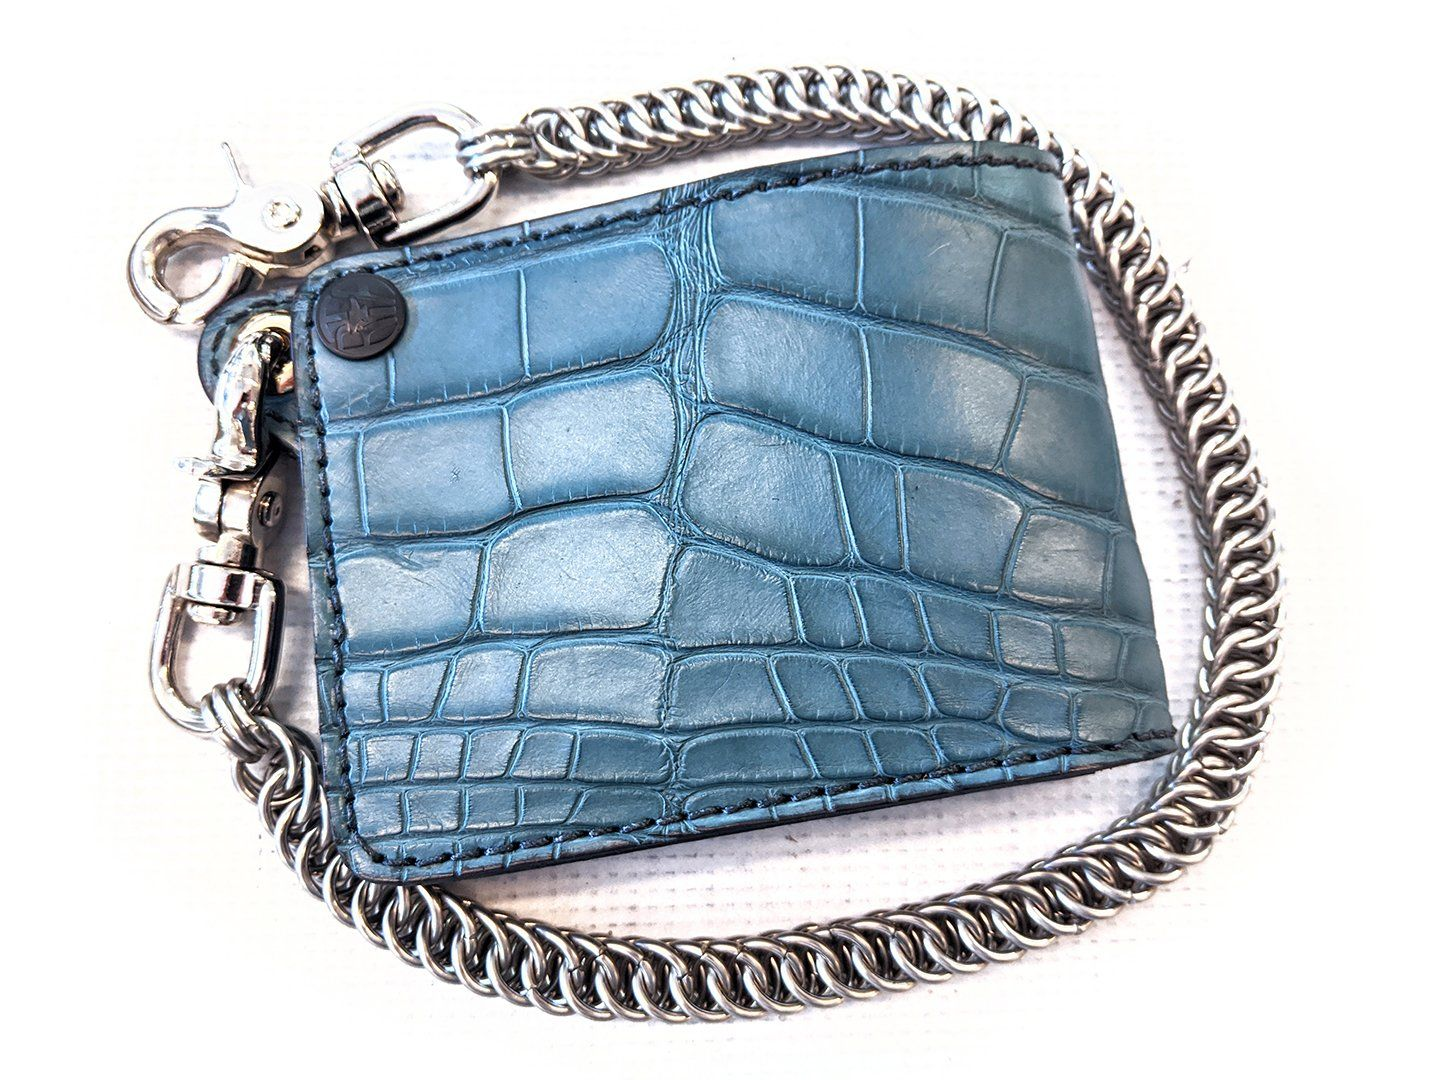 Bifold Leather Chain Wallet - Teal Alligator